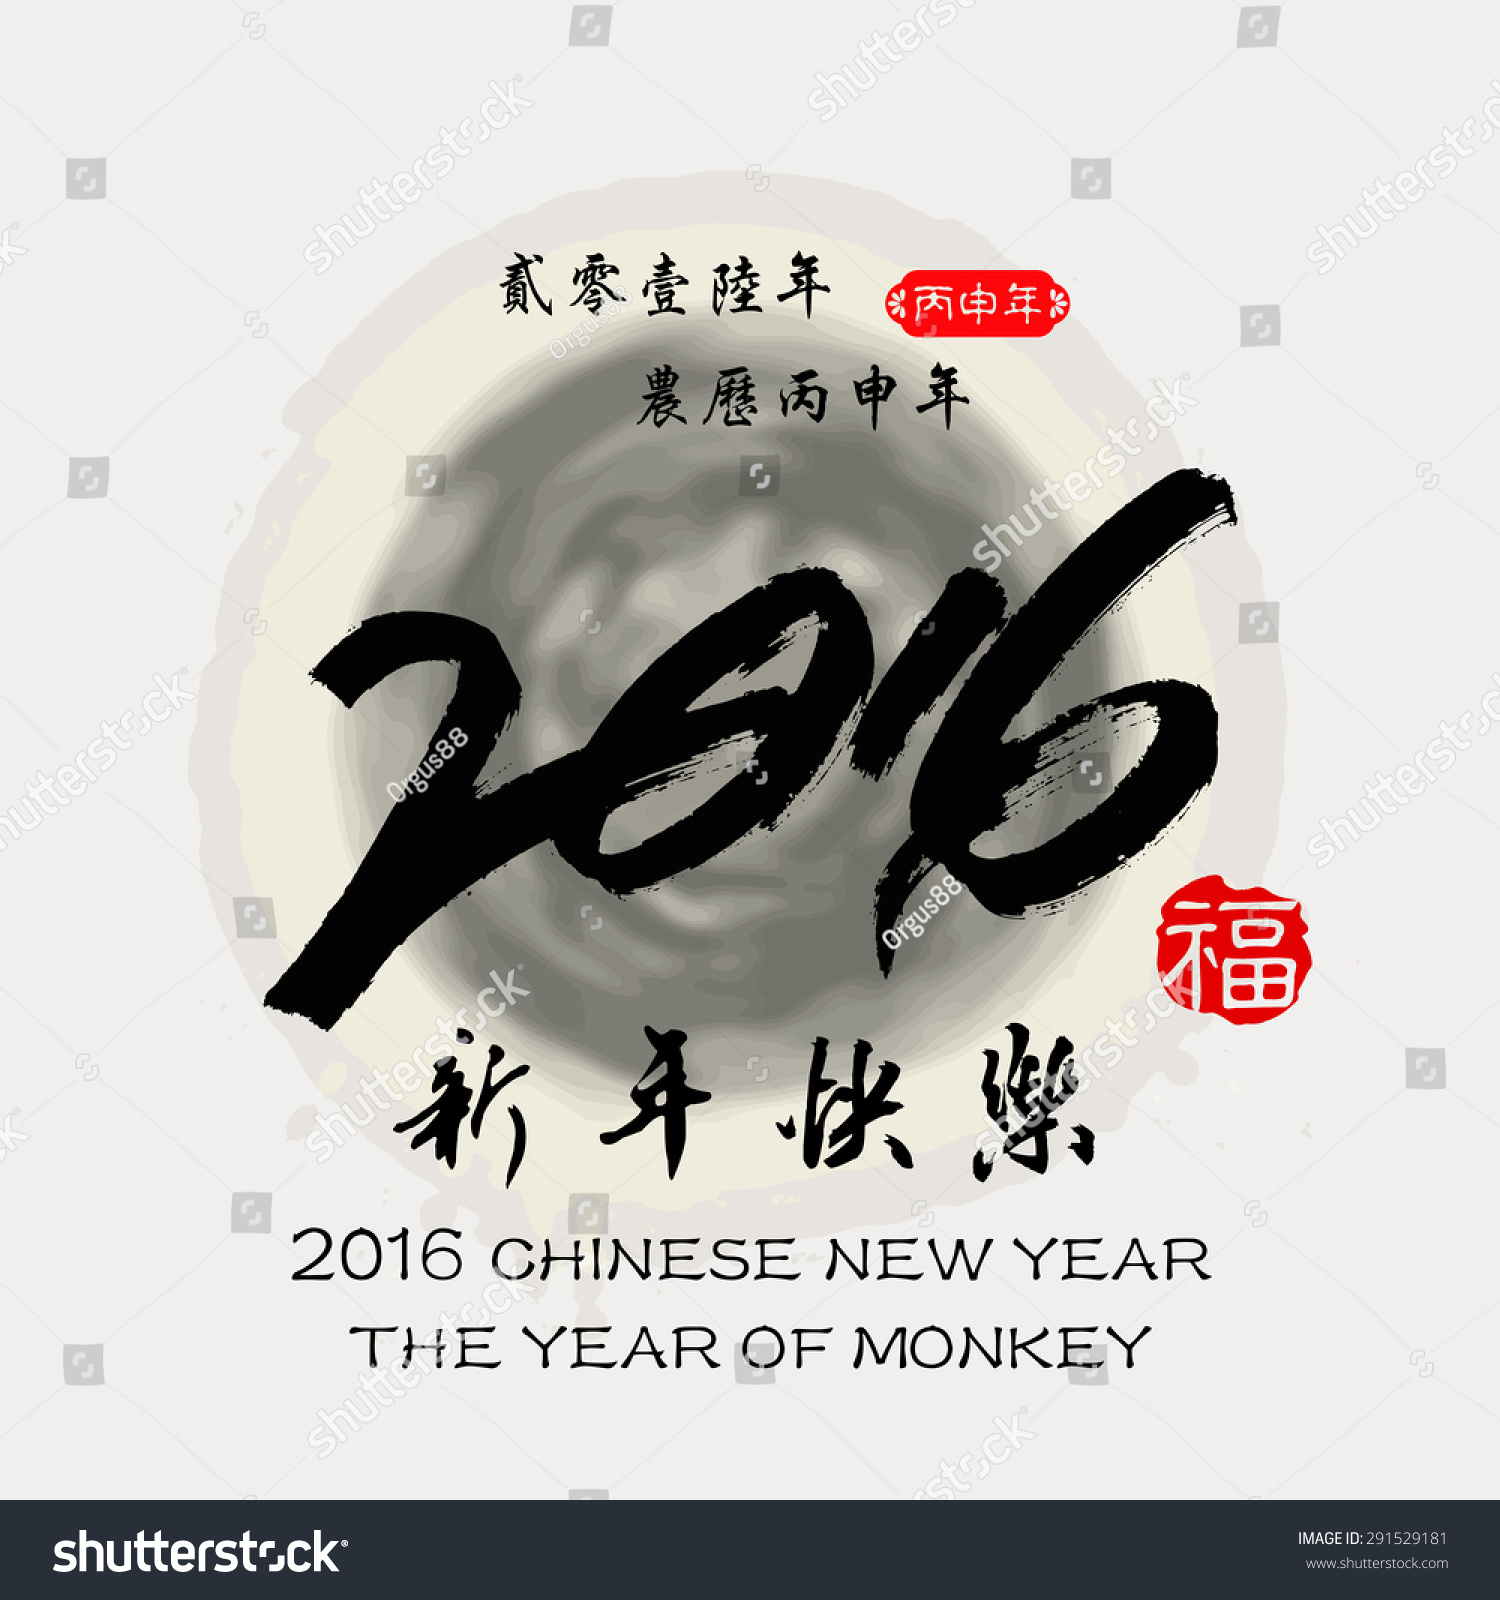 ... Lunar New Year of Monkey / Chinese big text translation: Happy New